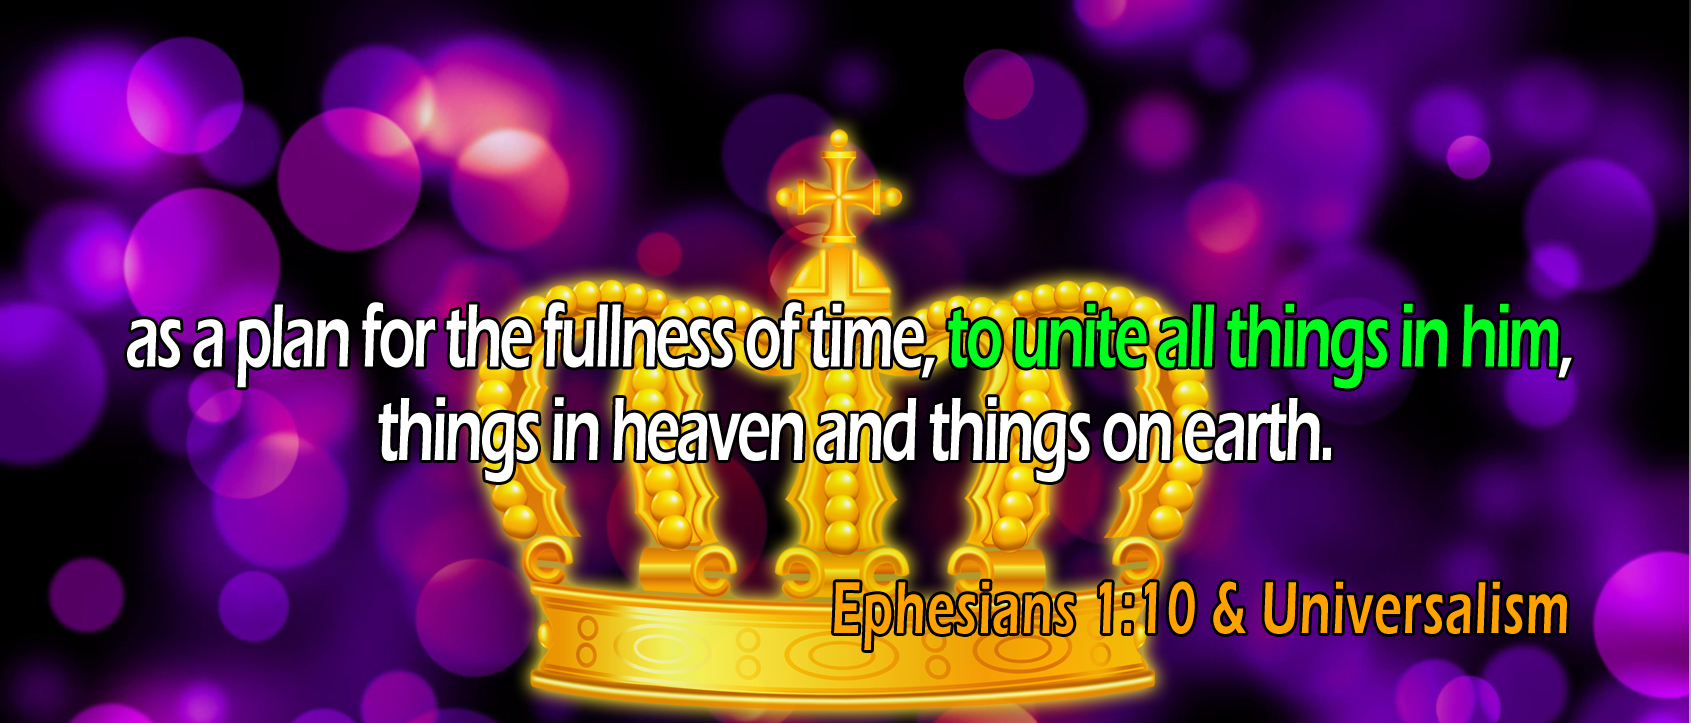 Ephesians 1:10, 'unite all things in him'